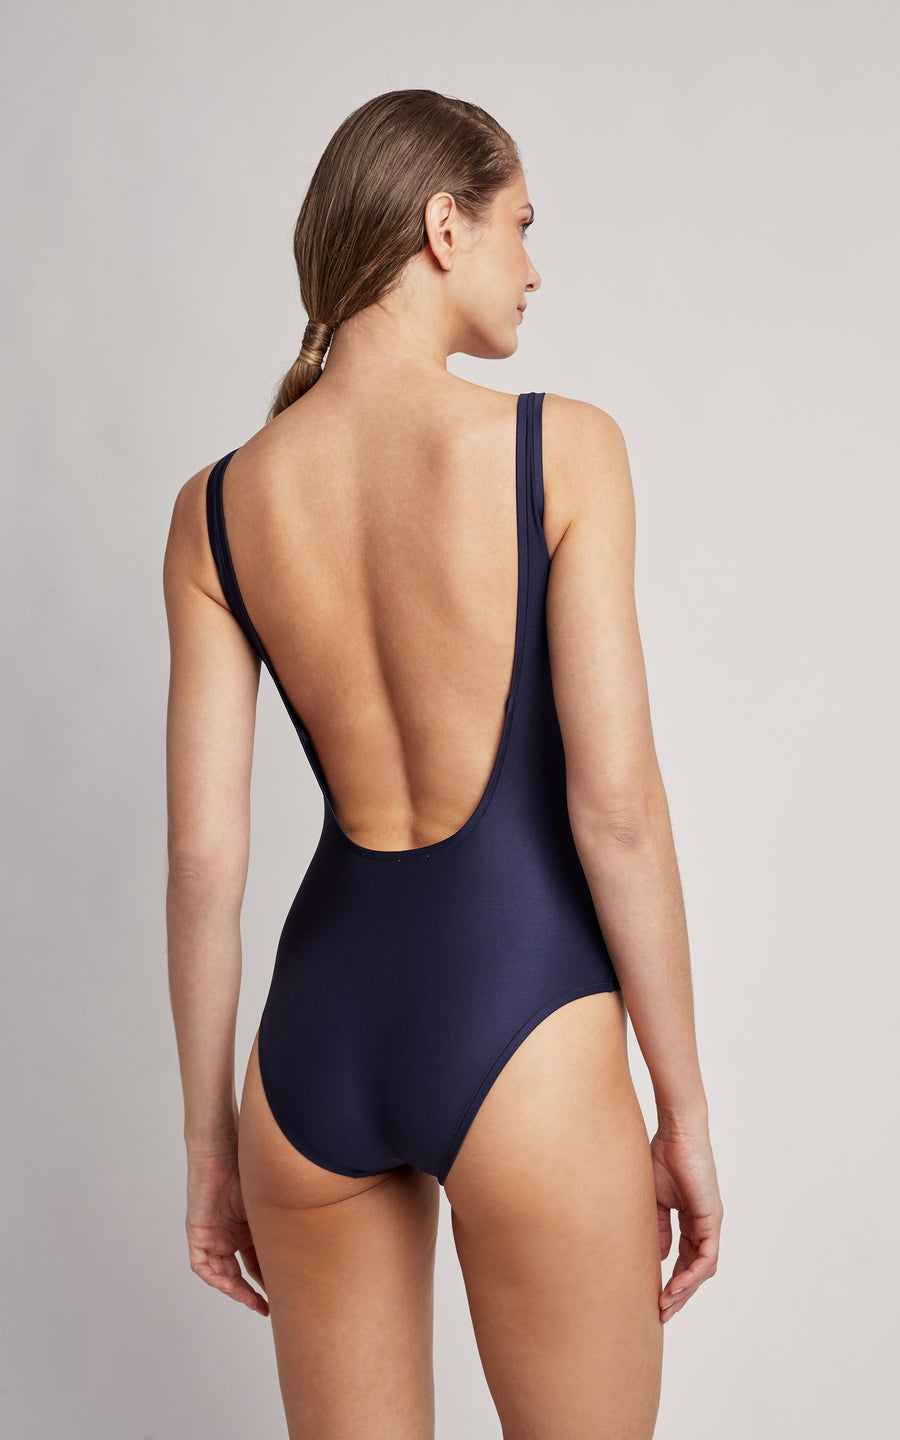 Shangai Classic Embellished One Piece Swimsuit